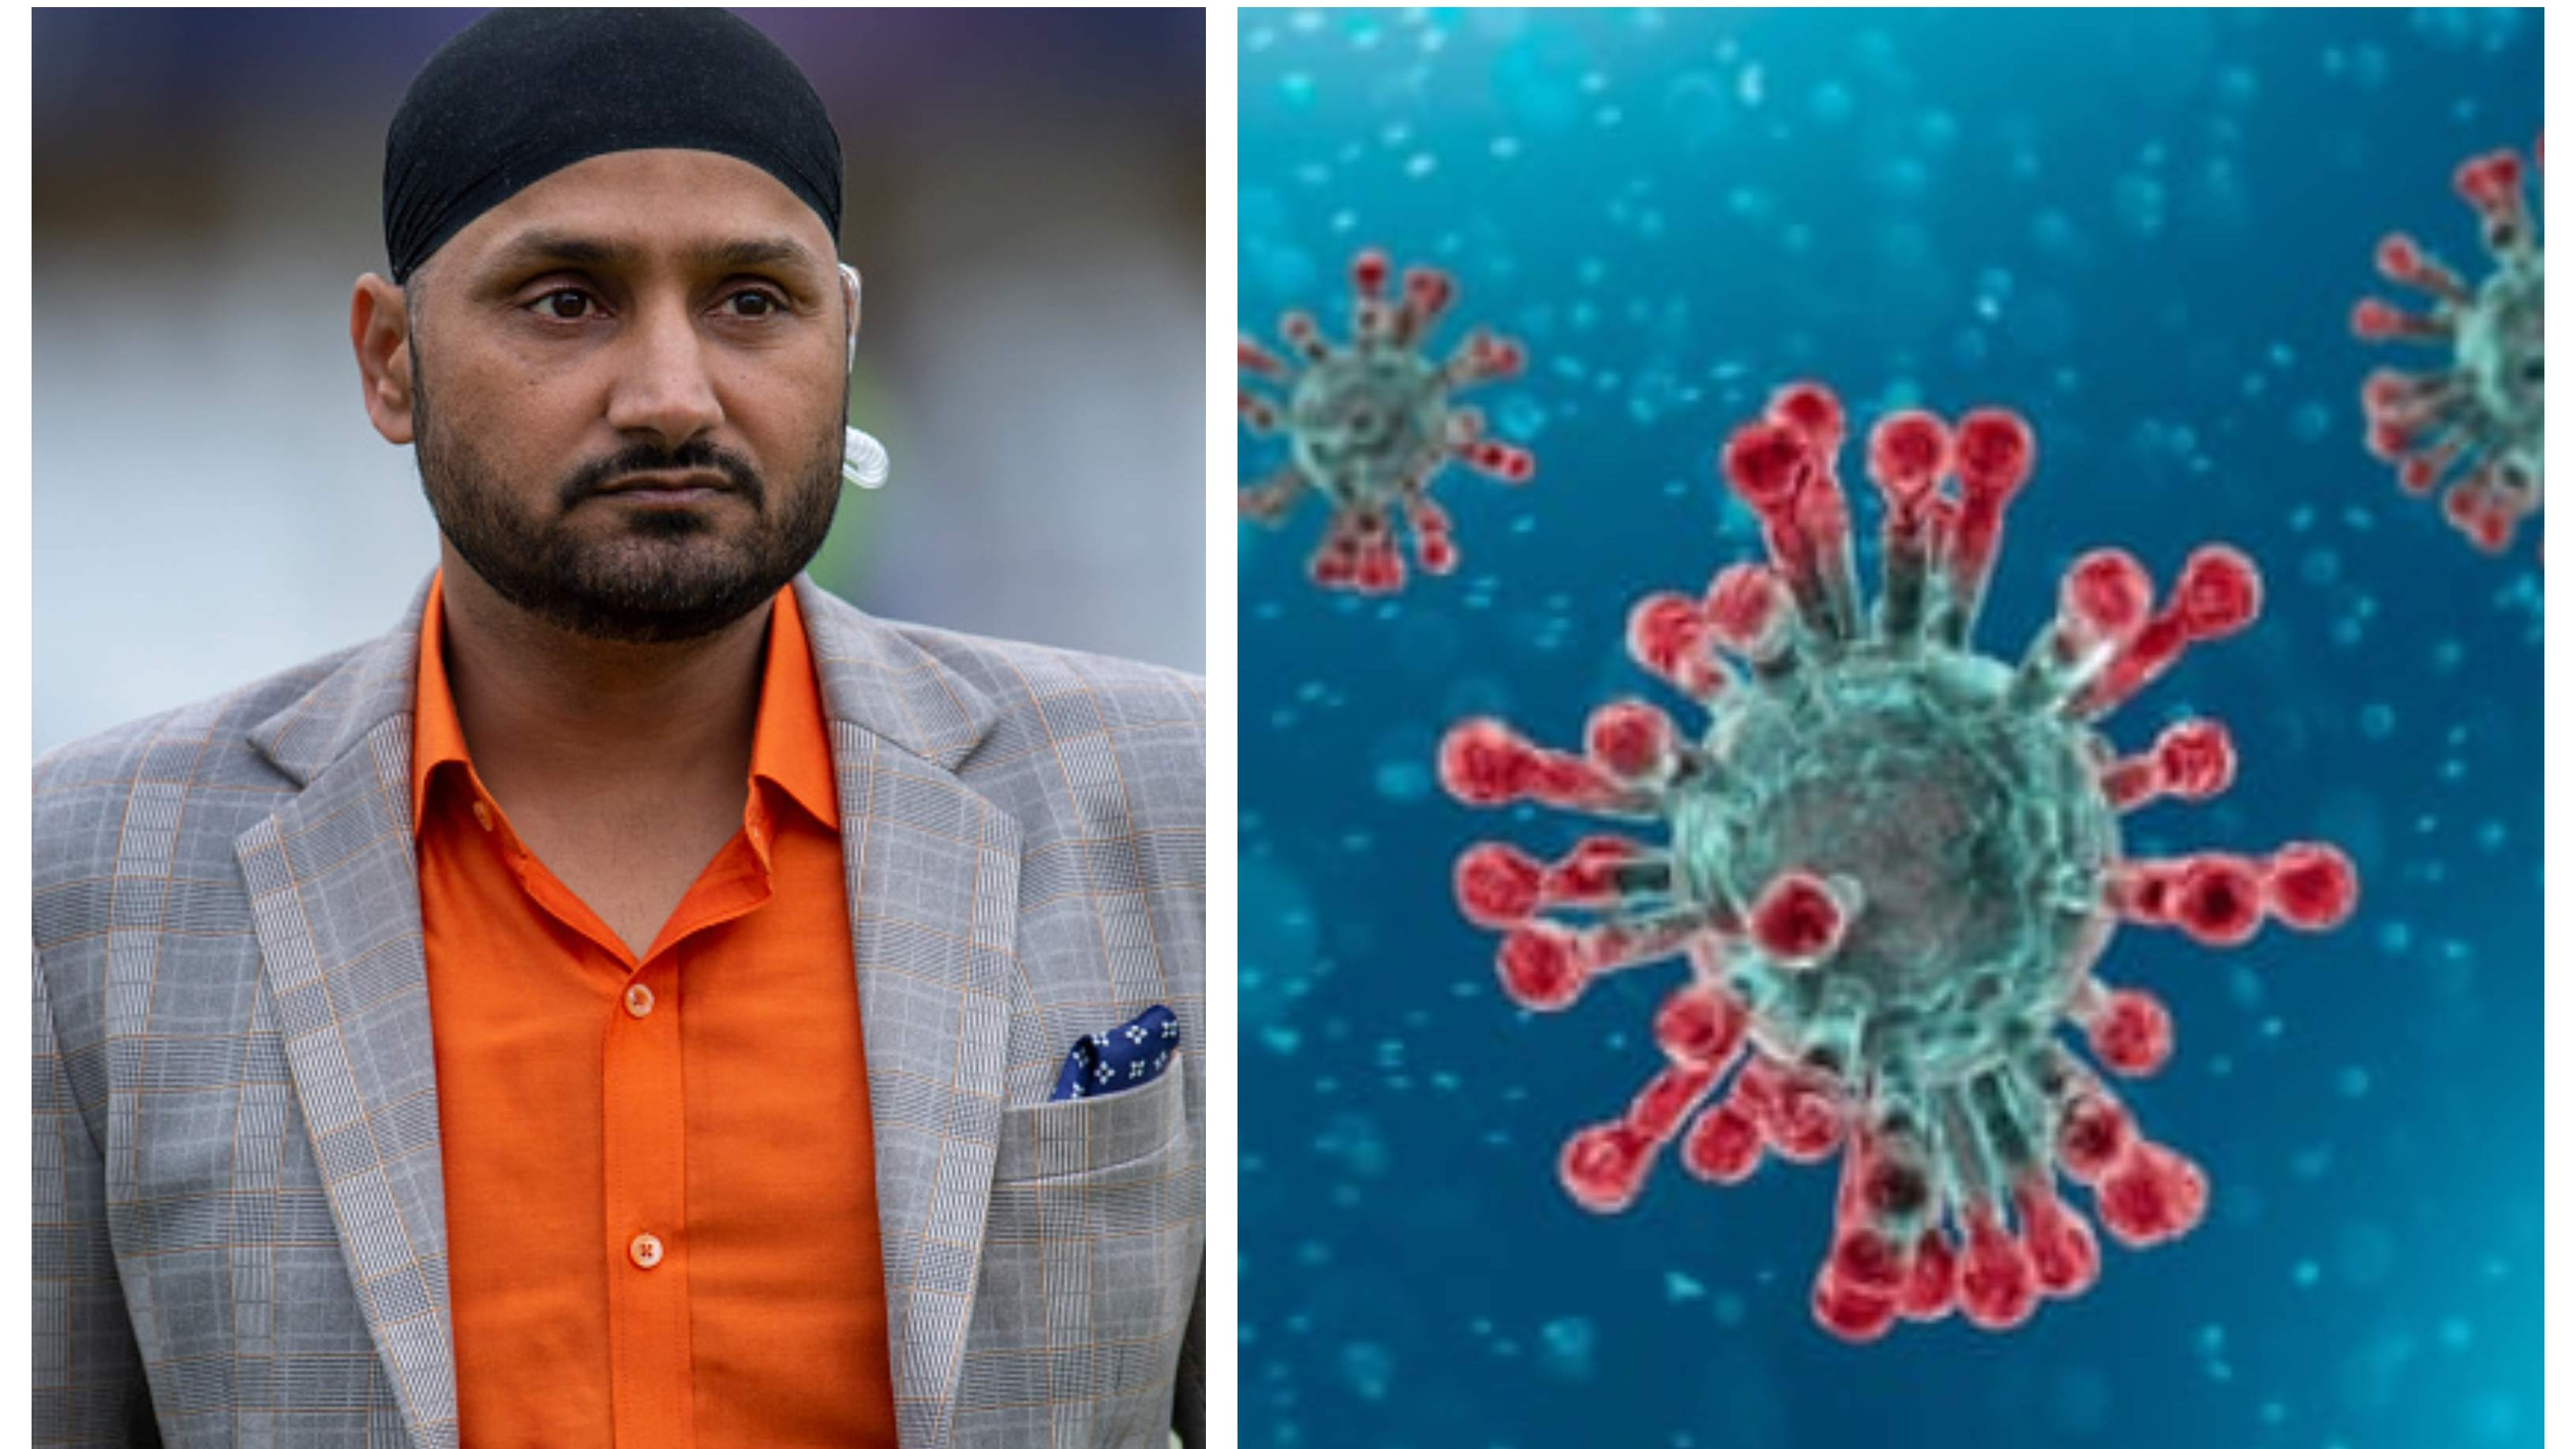 """Spending most of my time reading anything and everything about COVID-19"": Harbhajan Singh"